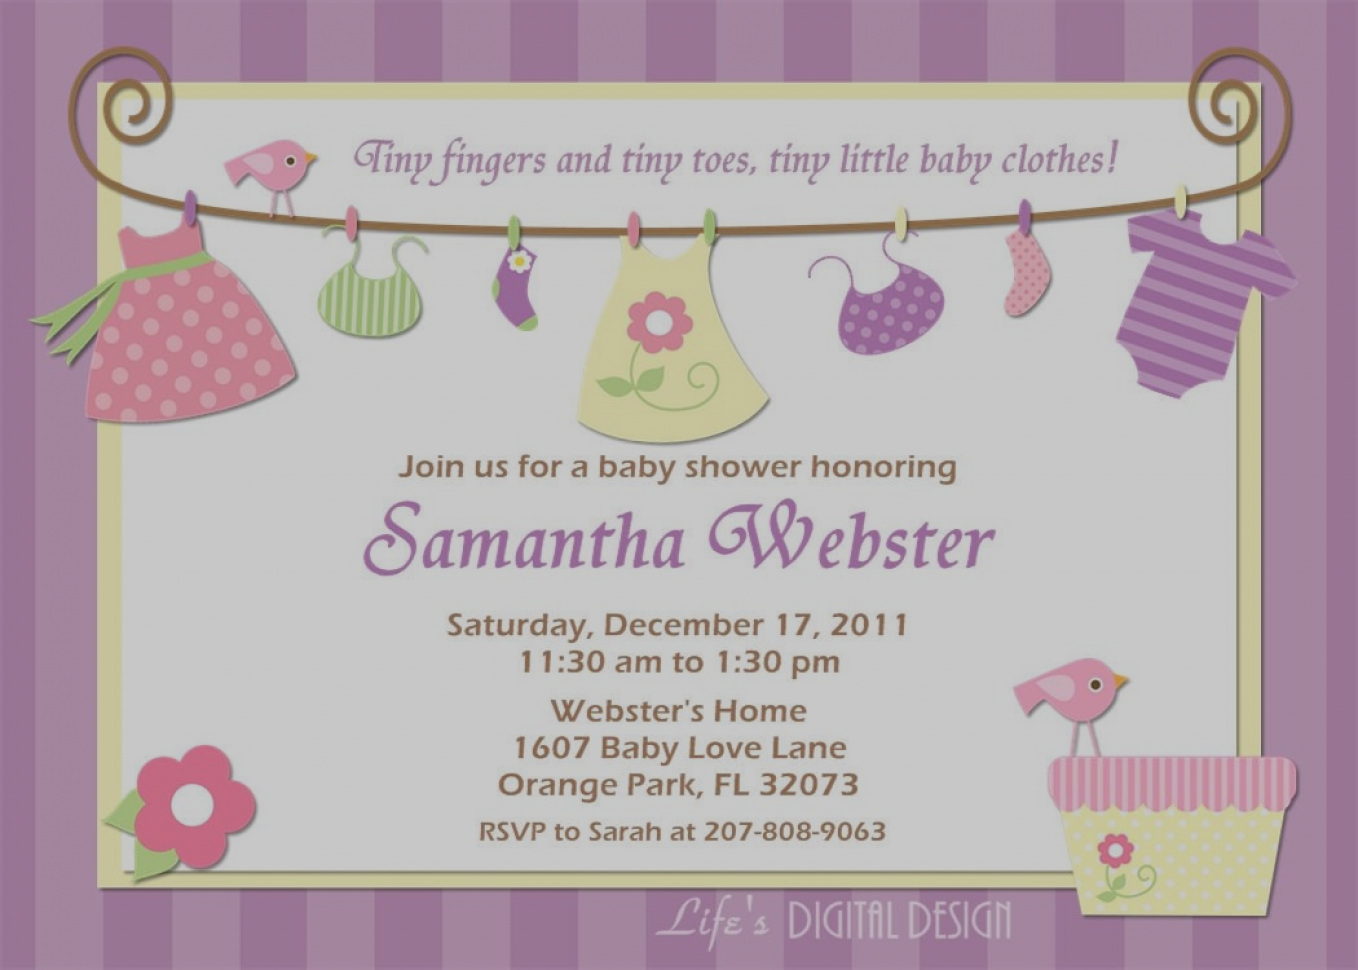 Full Size of Baby Shower:63+ Delightful Cheap Baby Shower Invitations Image Inspirations Cheap Baby Shower Invitations Baby Shower Wreath Baby Shower Video Baby Shower Fiesta Ideas Baby Shower Party Themes Adornos De Baby Shower